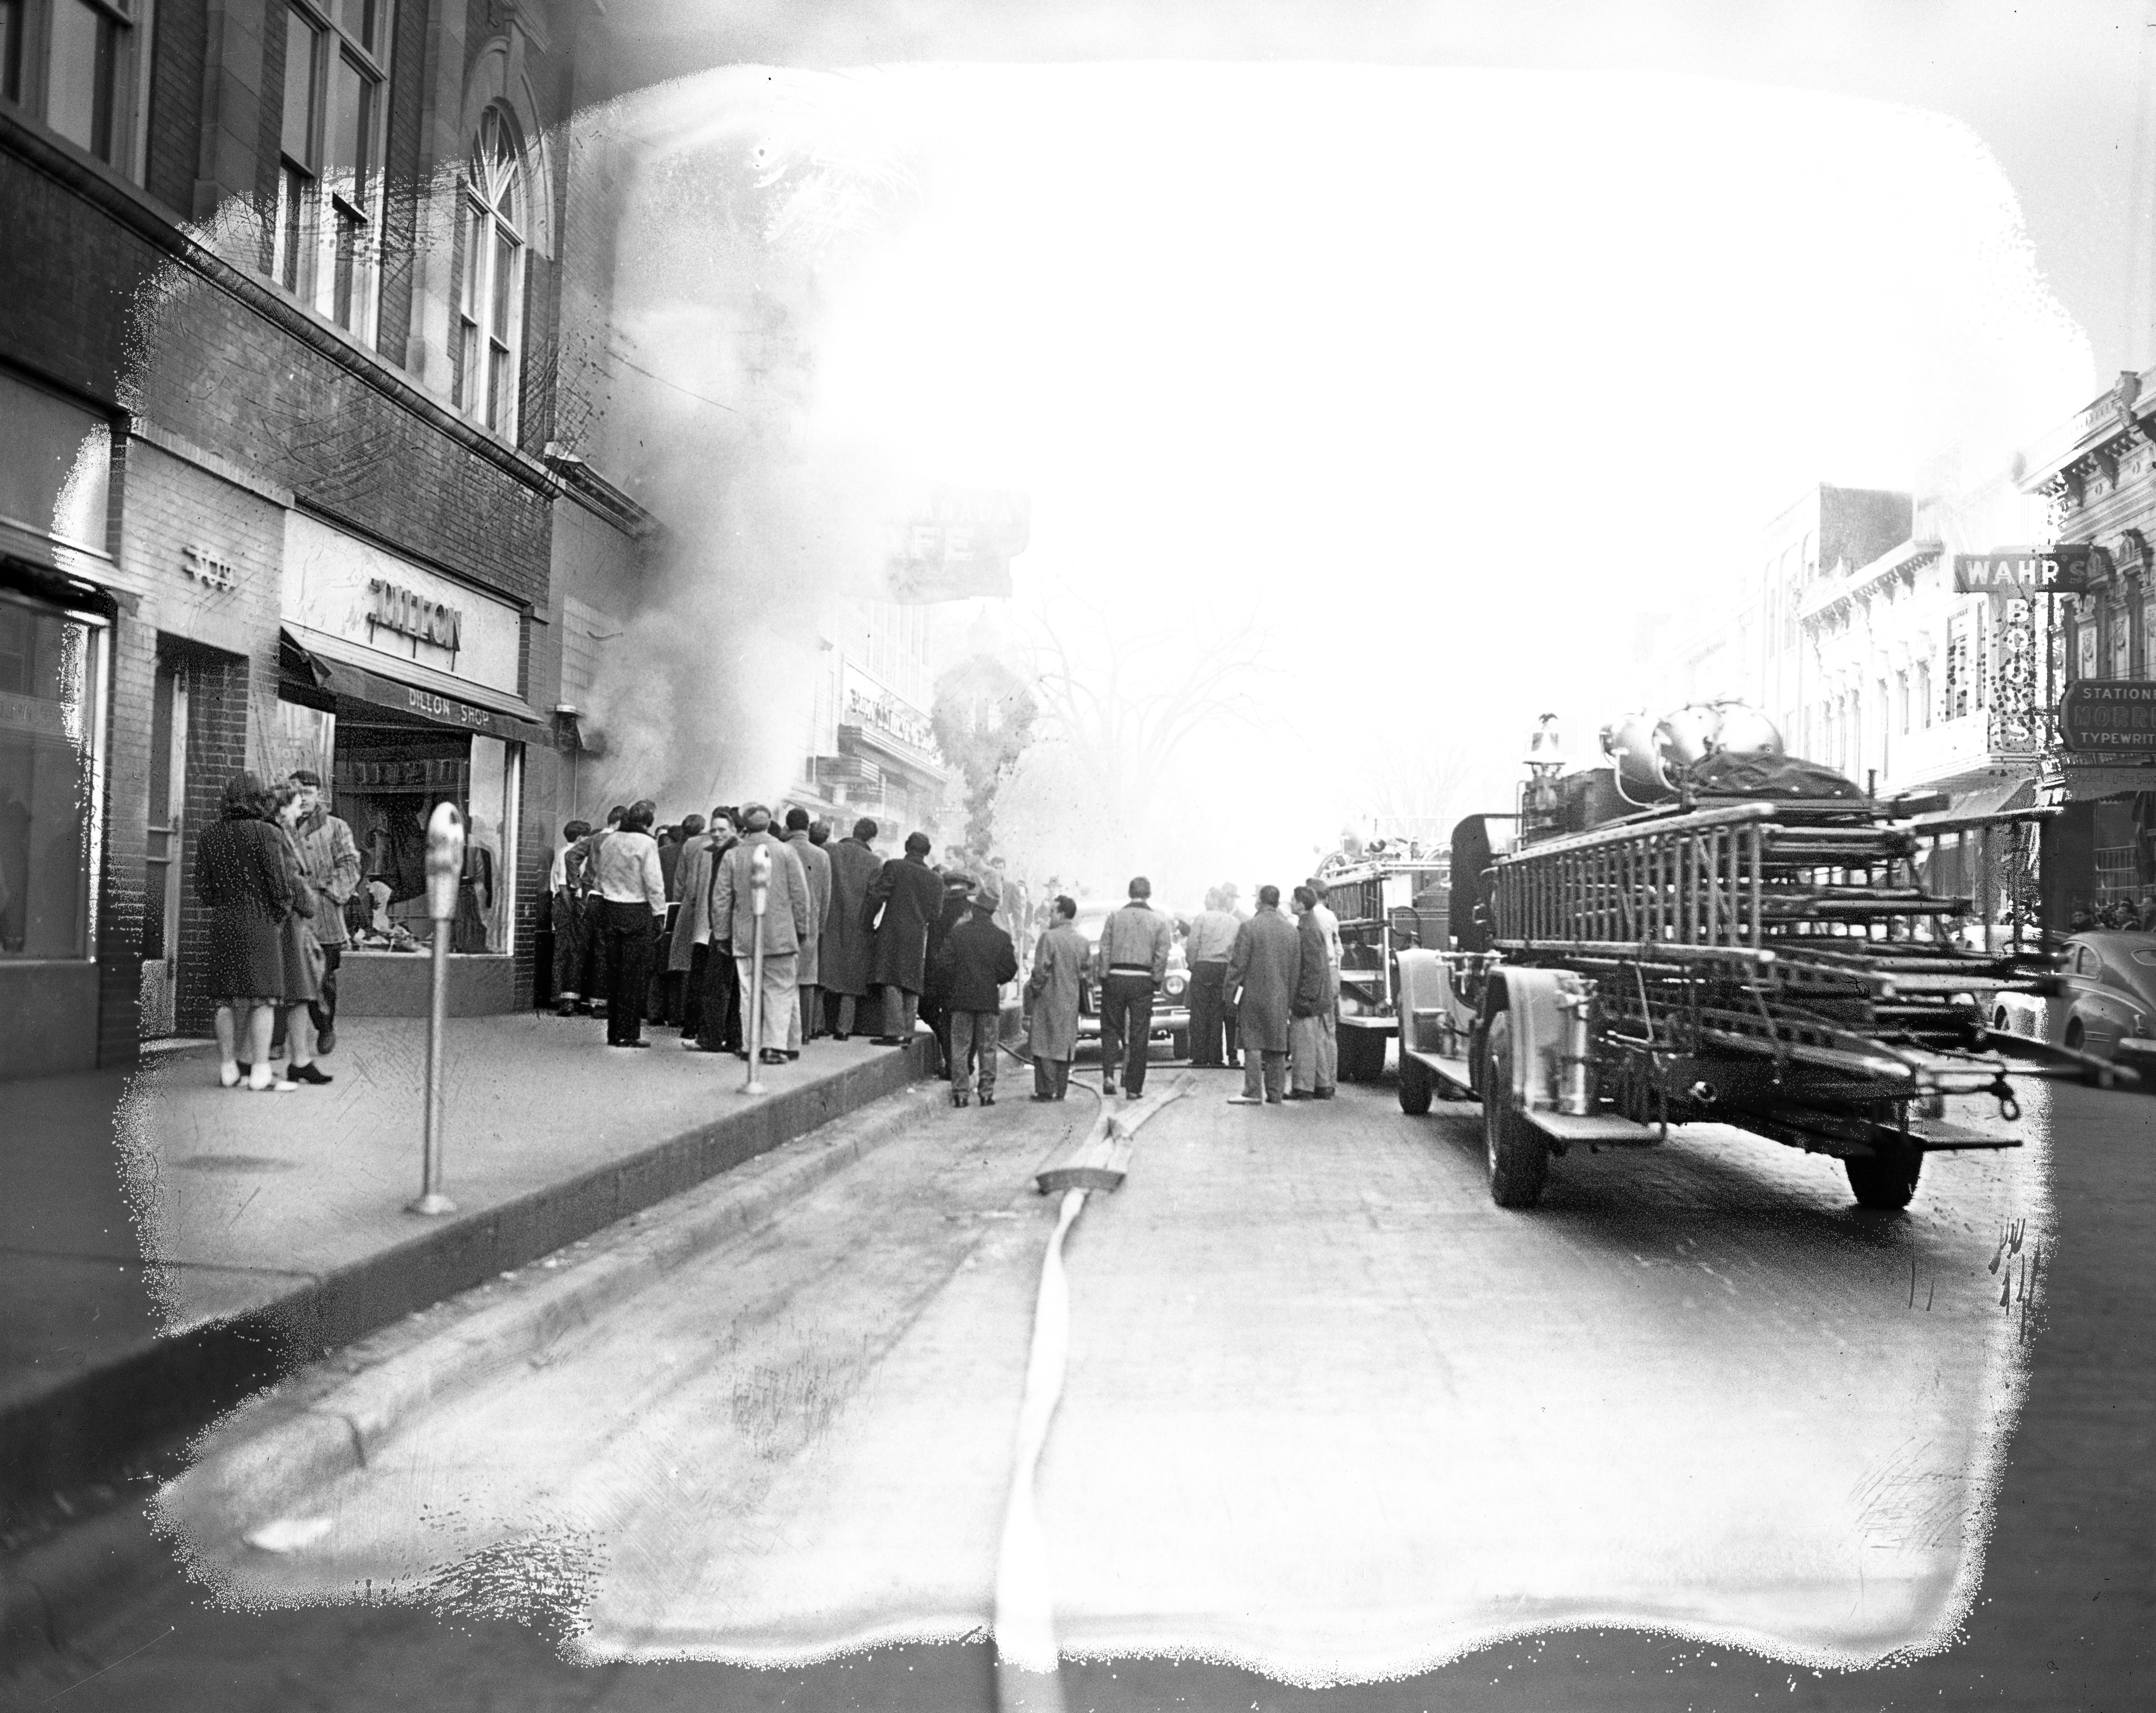 Ann Arbor Fire Trucks Line Up On State St To Battle Wild & Co. Fire, December 1947 image